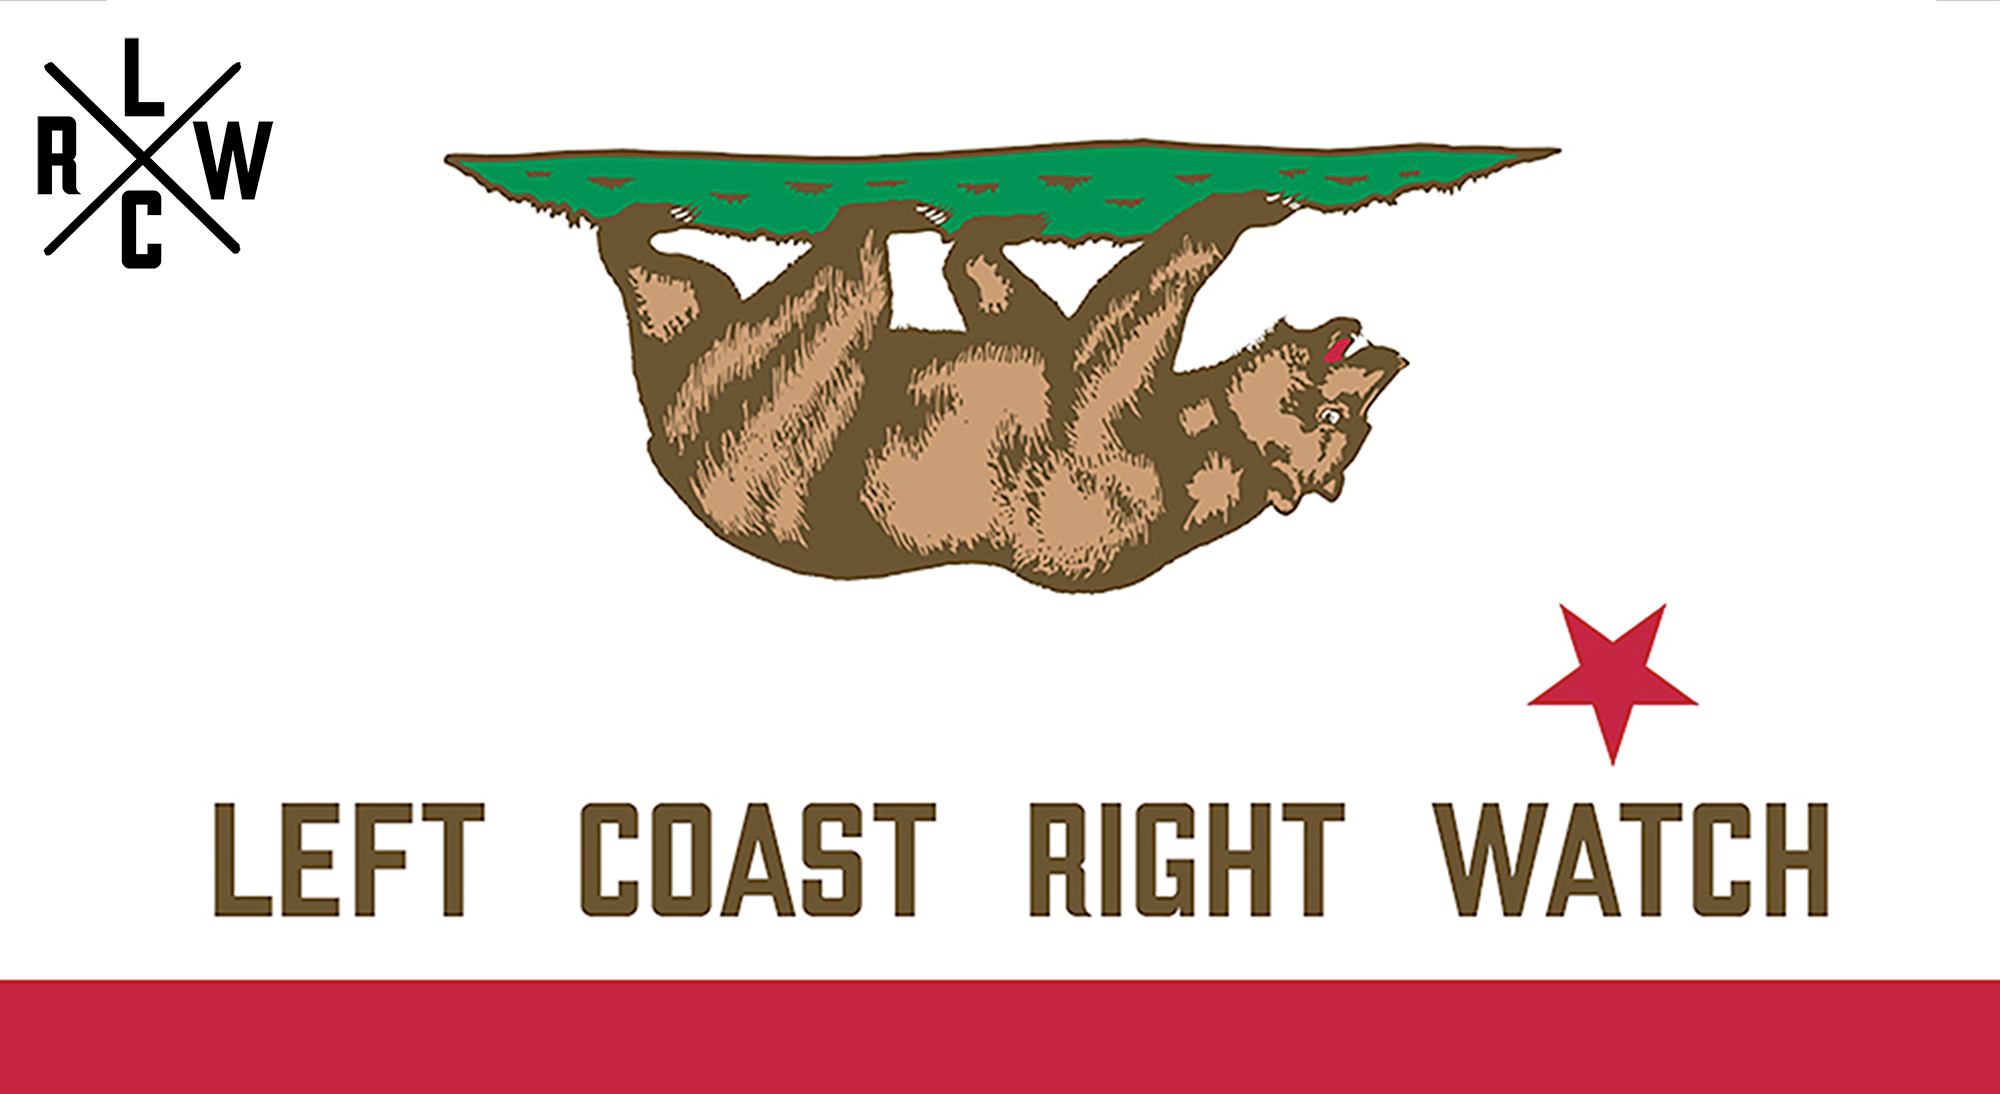 LCRW logo showing the the Californian flag with the bear and star turned upside down and Left Coast Right Watch